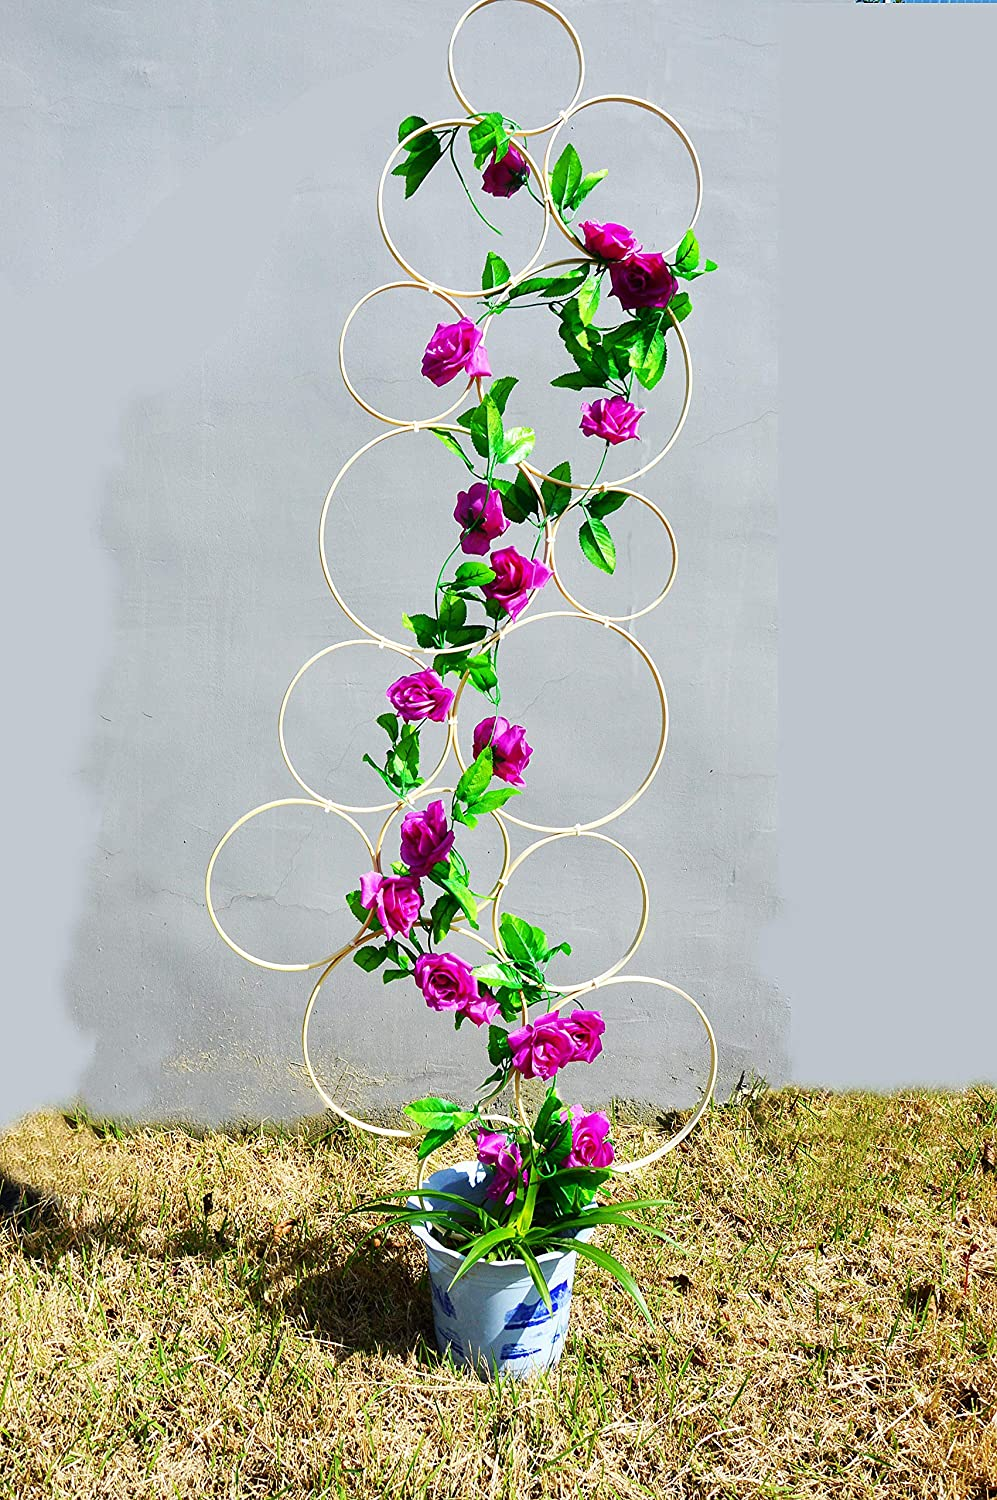 SUNNYHILL Pack of 15 Bamboo Rings DIY Trellis for Climbing Plants Vertical Garden for Vines Vegetables Vining Flowers(No Flowers)